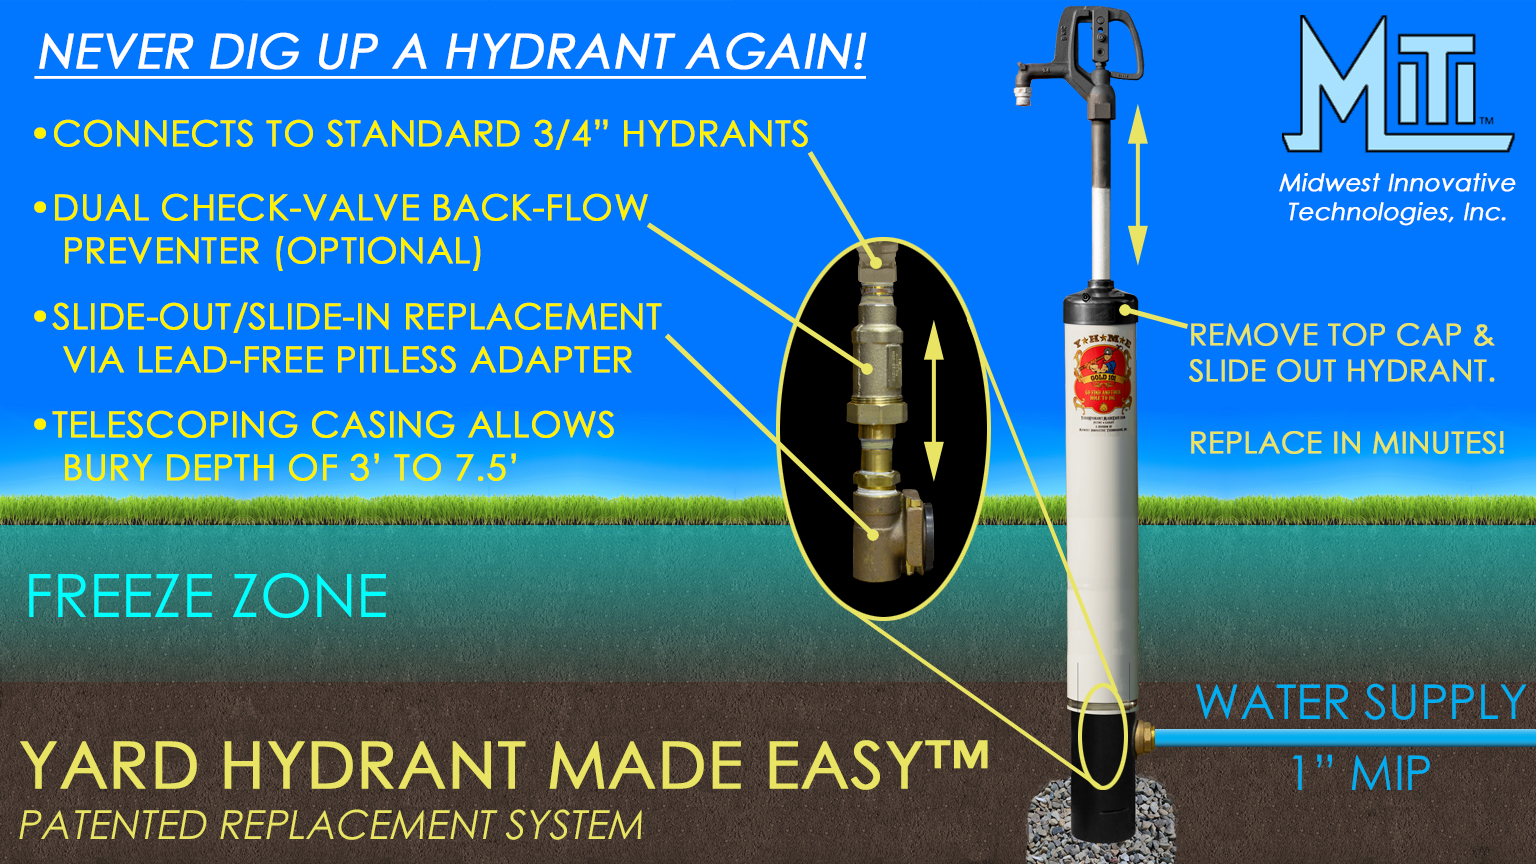 Yard Hydrant Replacement Made Easy™ Cross-Section